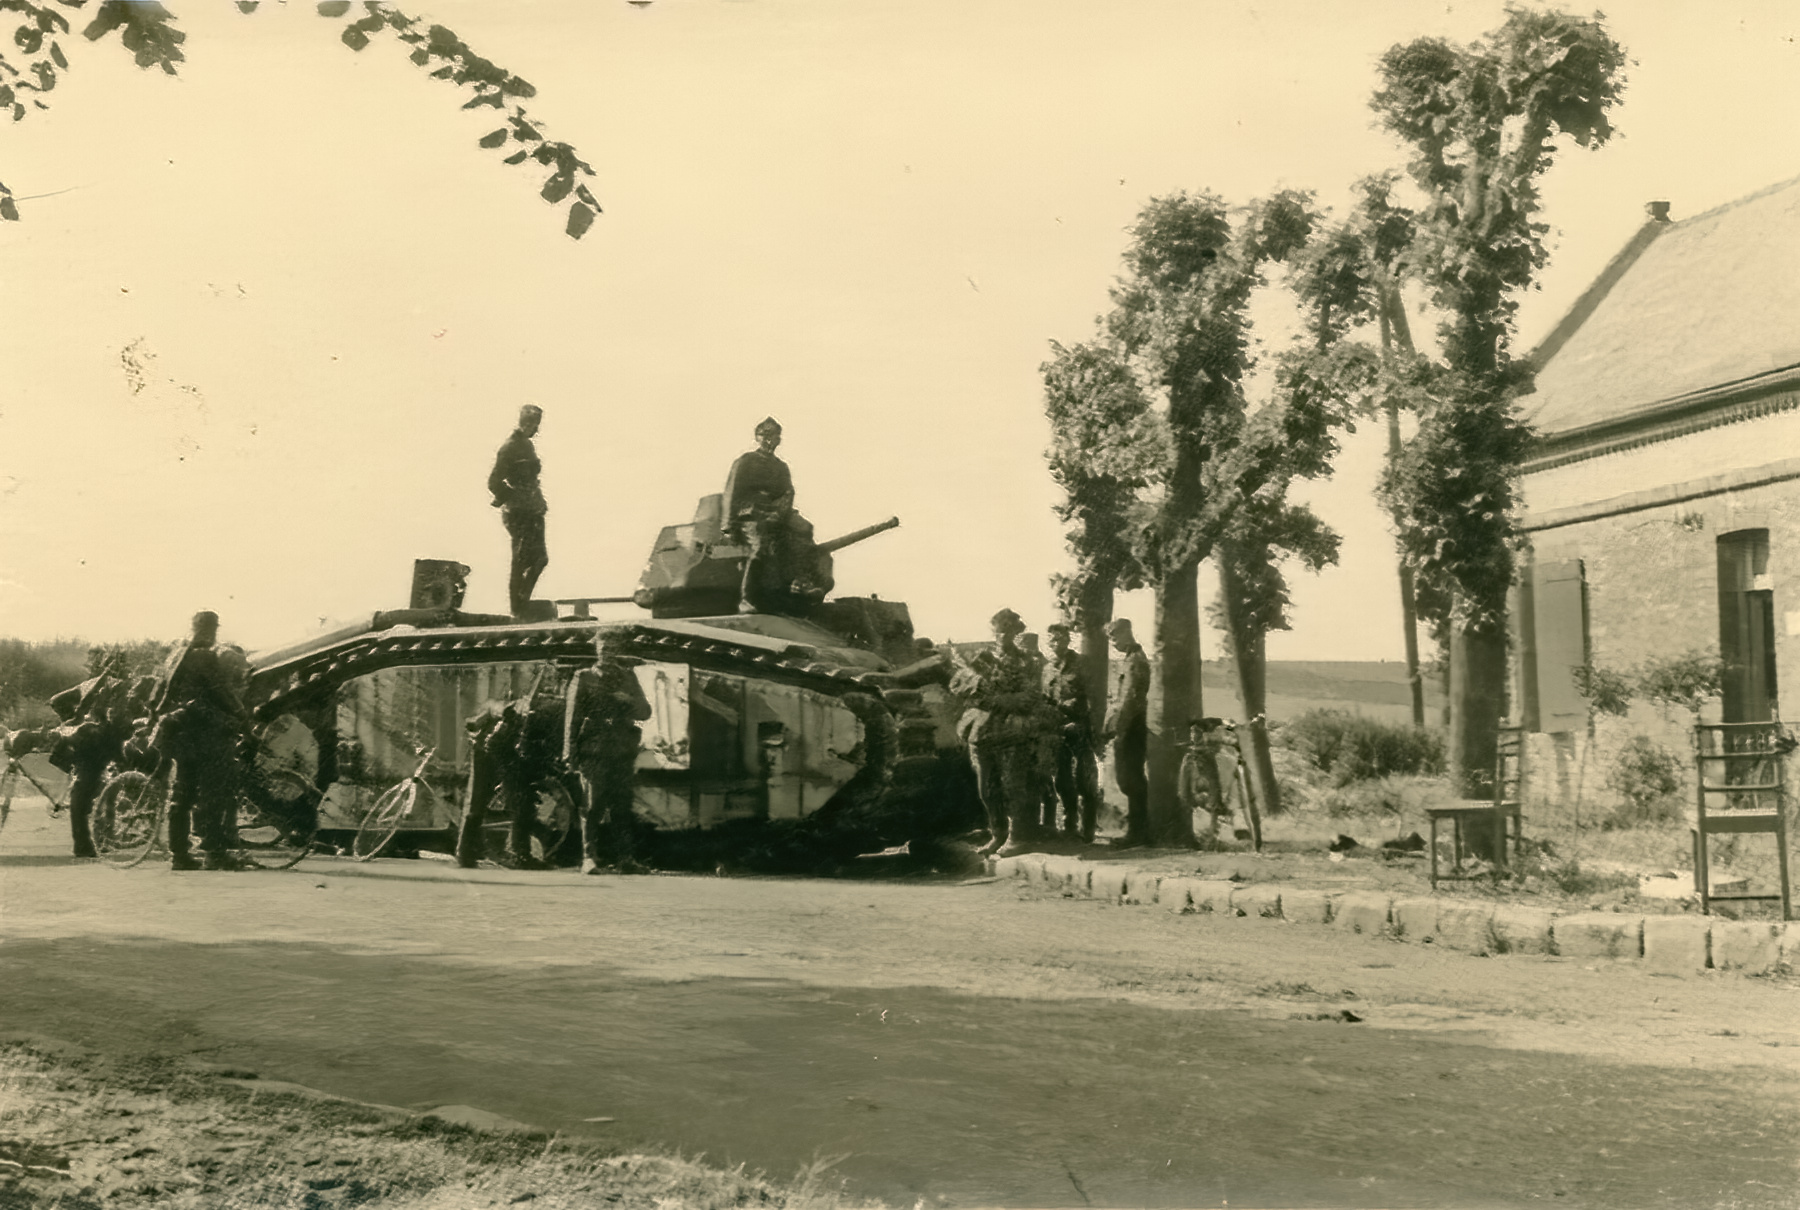 French Army Renault Char B1 abandoned during the battle of France 1940 ebay 01